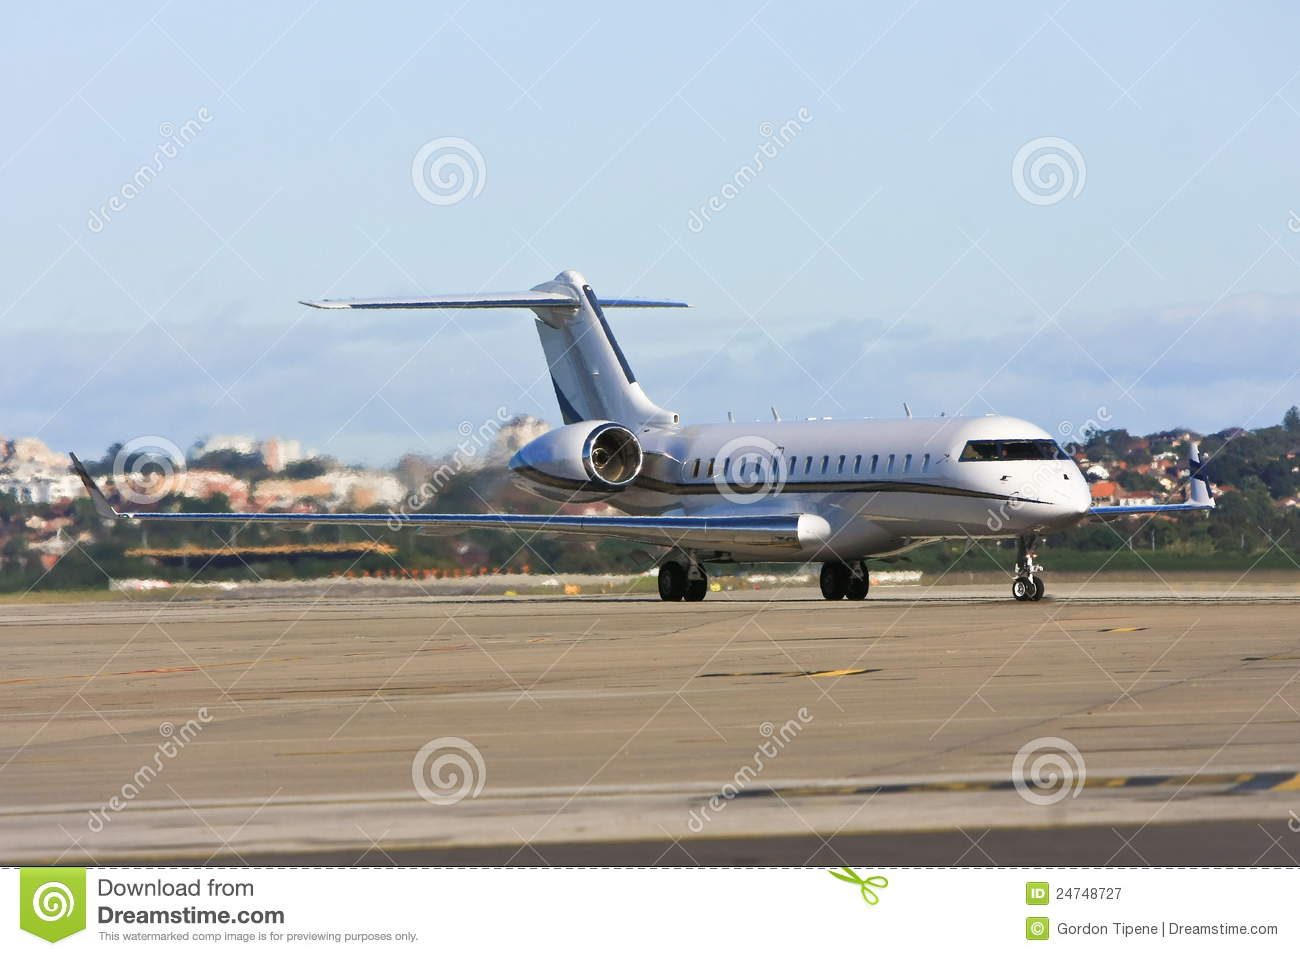 Private Jet Airliner On Tarmac Royalty Free Stock Photography  Image 24748727